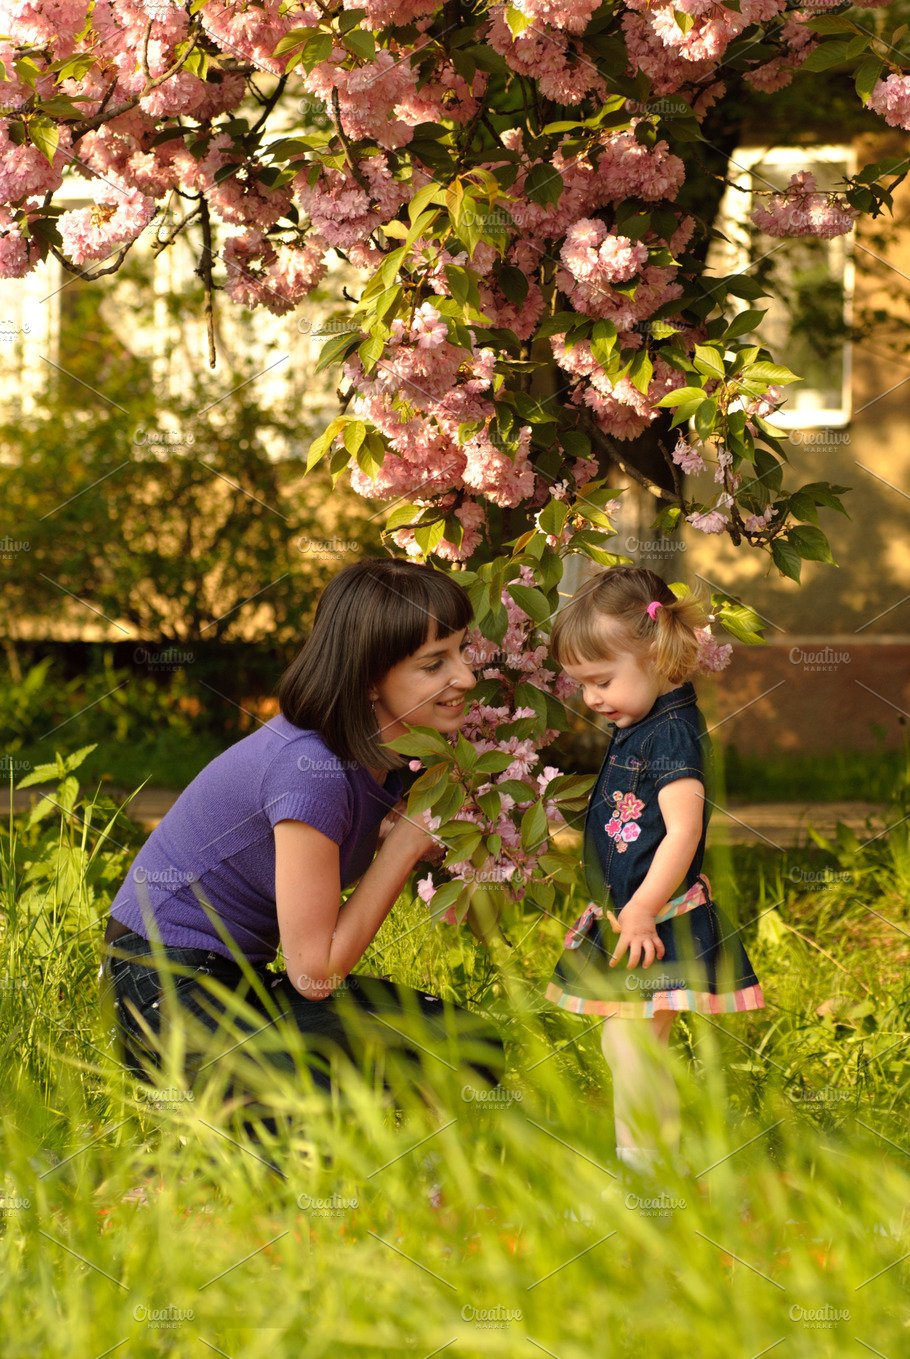 Little girl in garden with mother - Nature Photos | Creative Market Pro